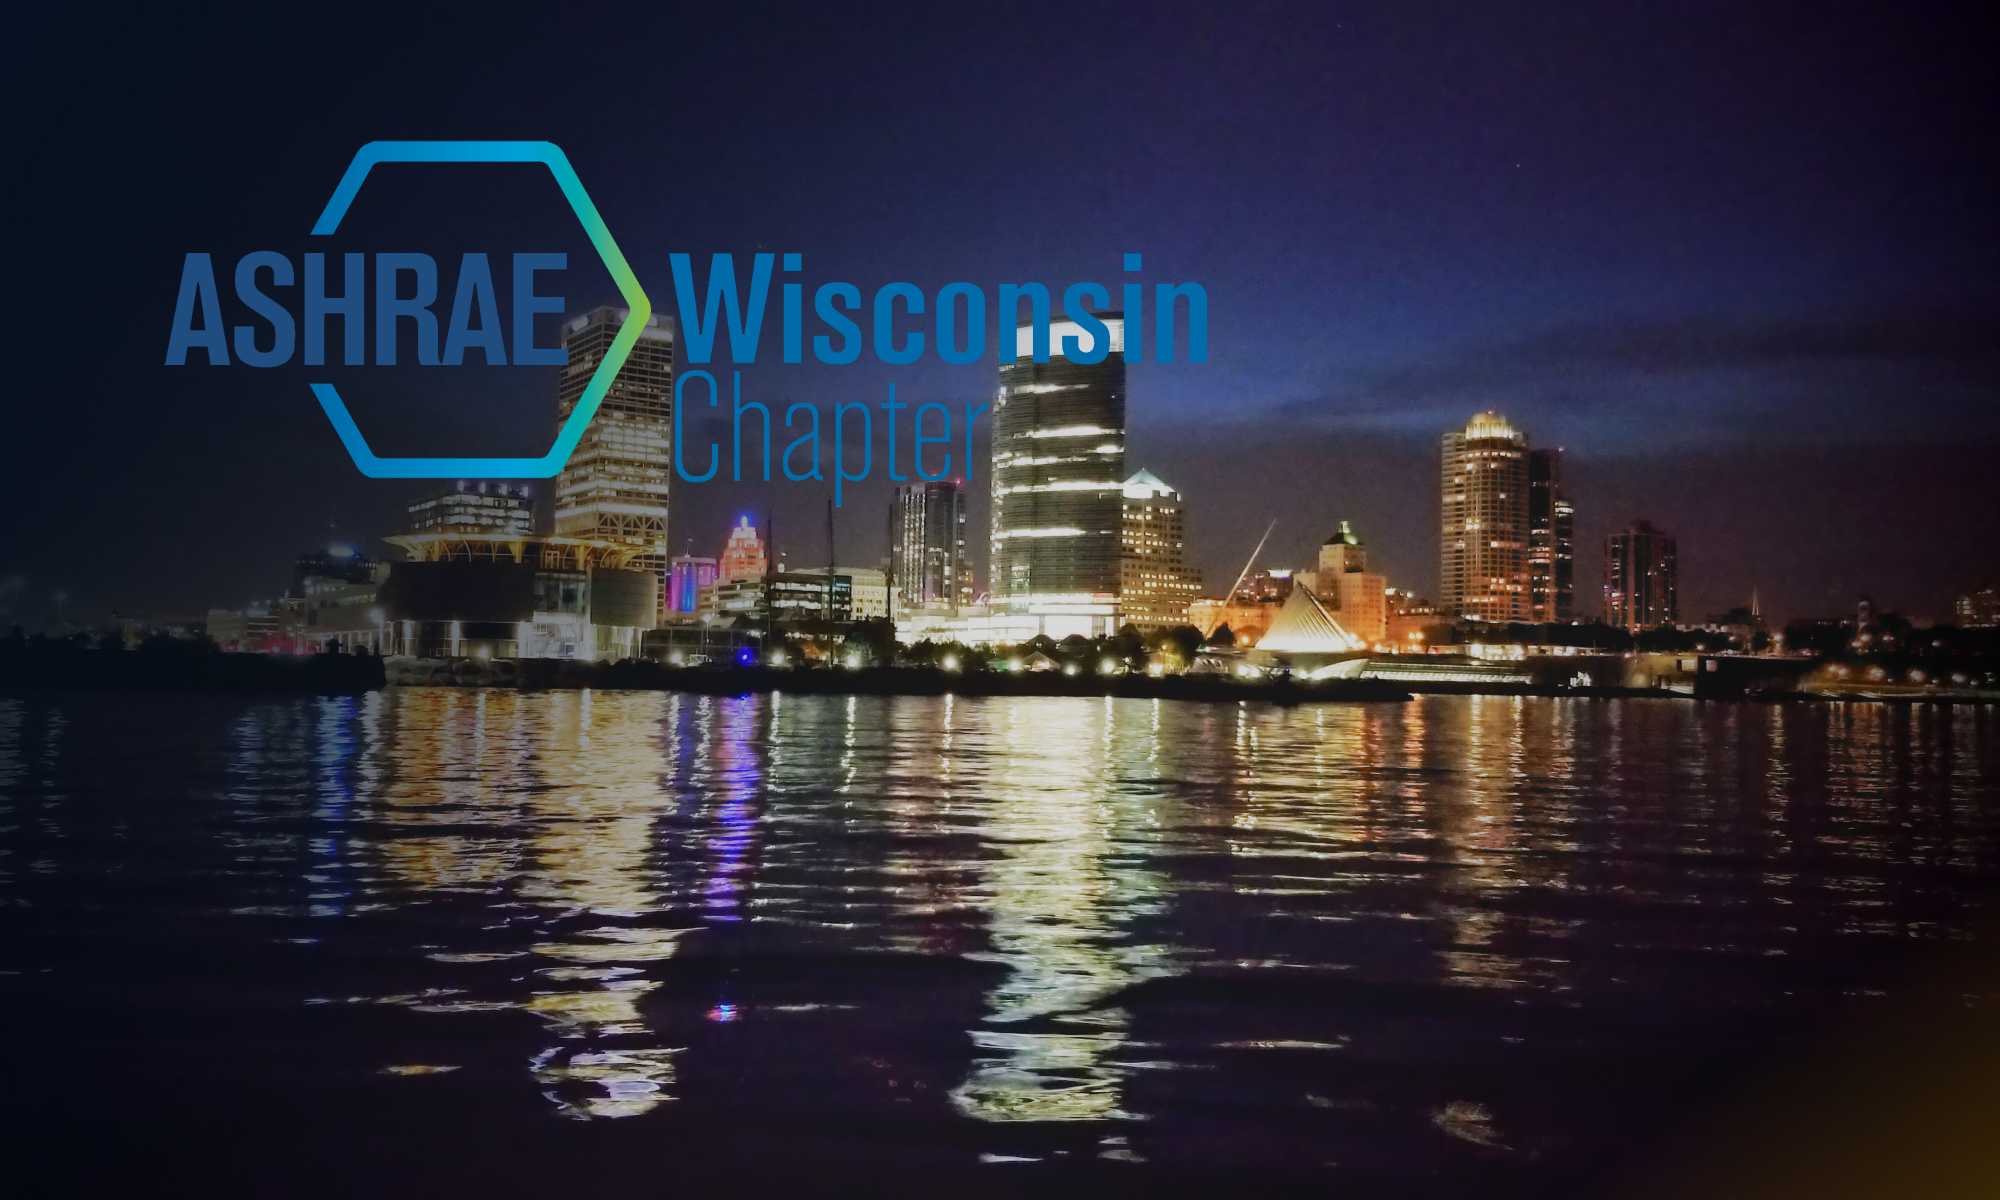 ASHRAE Wiscons Chapter